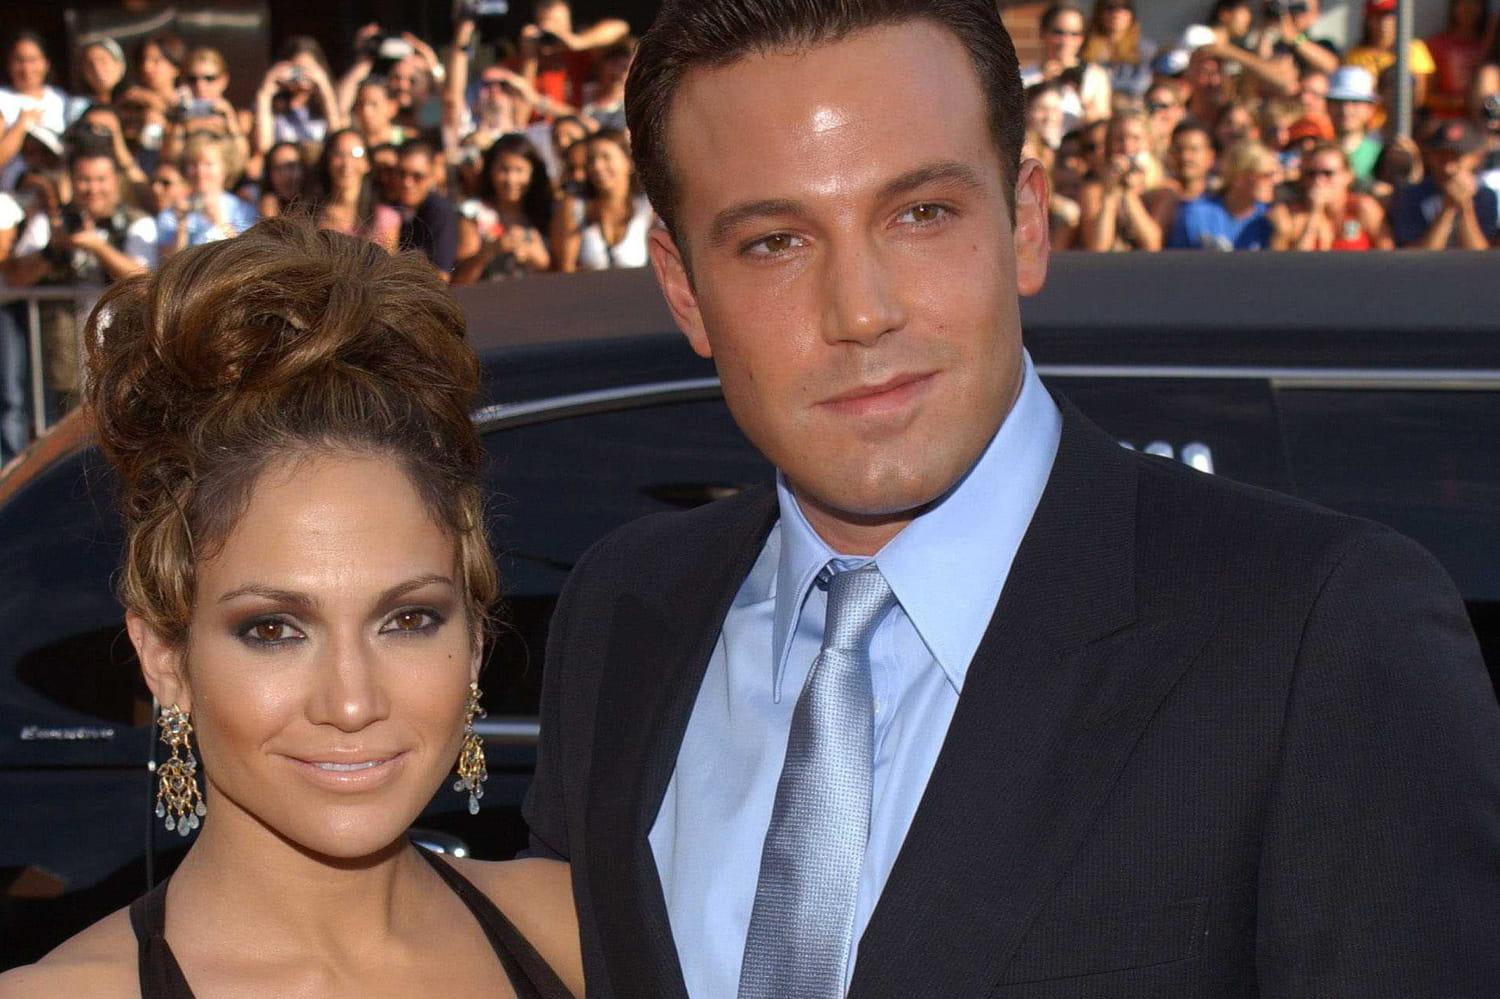 JLo and Ben Affleck kiss full on the mouth -PHOTOS